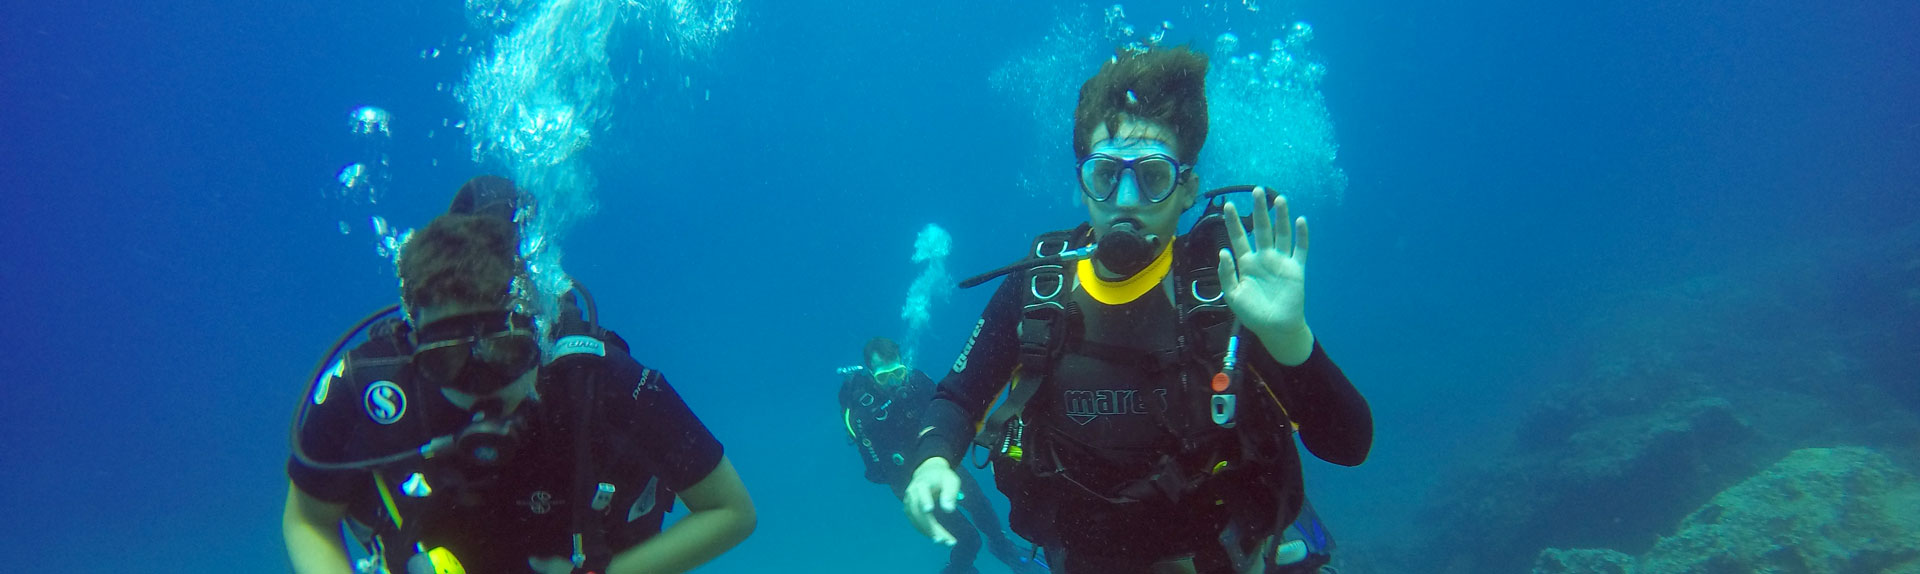 Discover Scuba Diving - Athens Divers Club